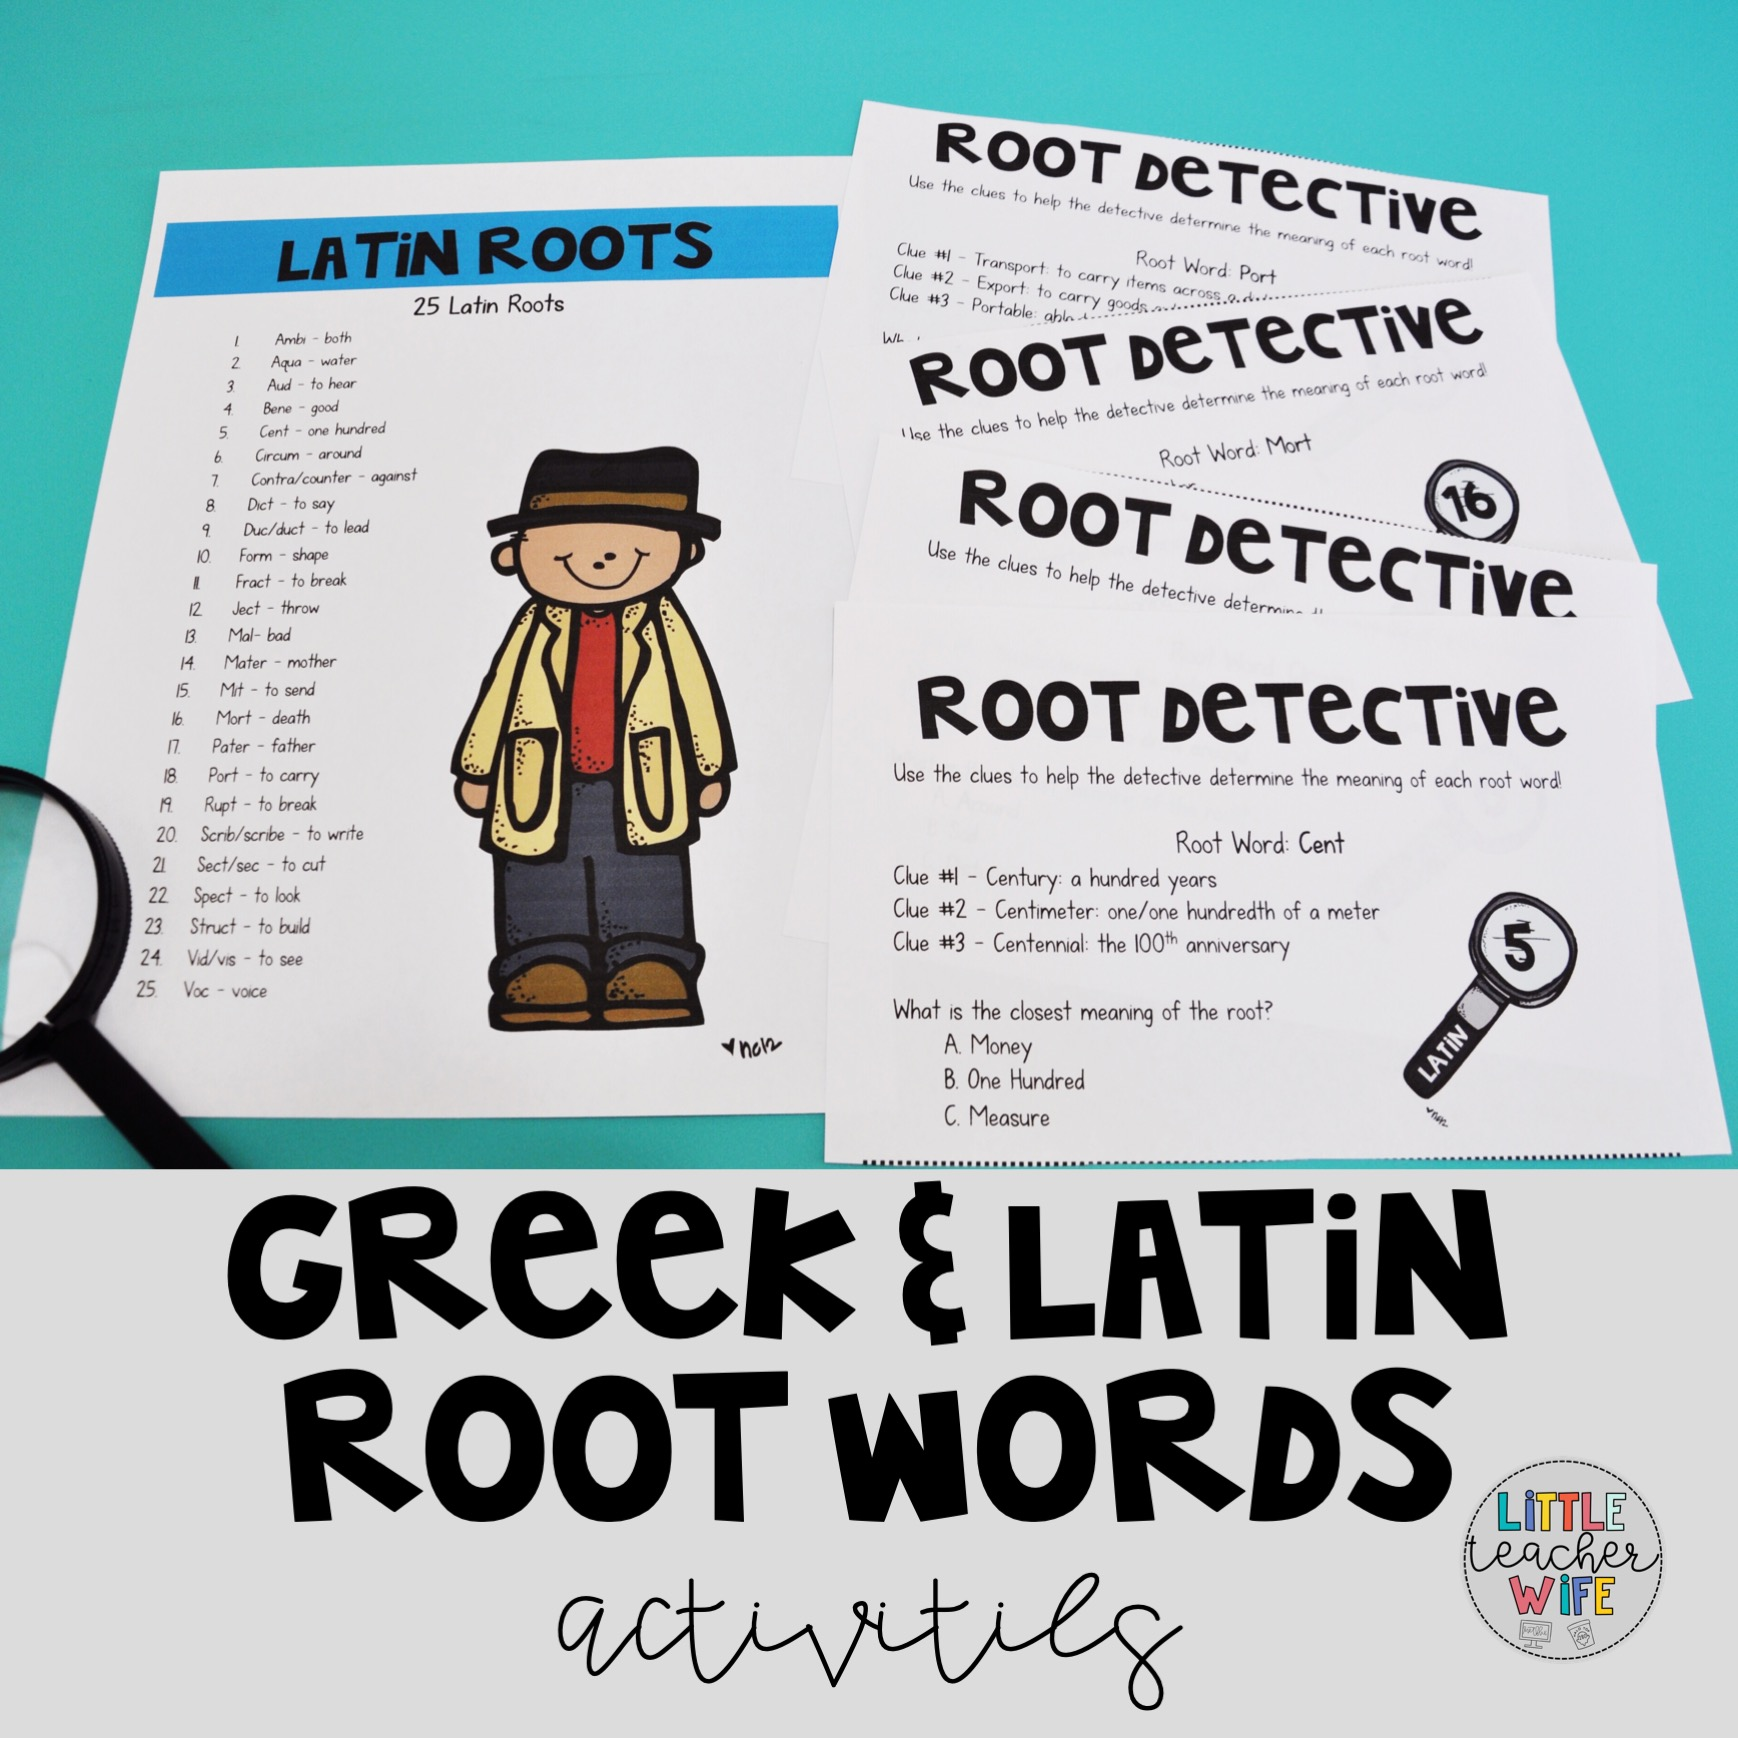 Greek and Latin Root Words - Little Teacher Wife